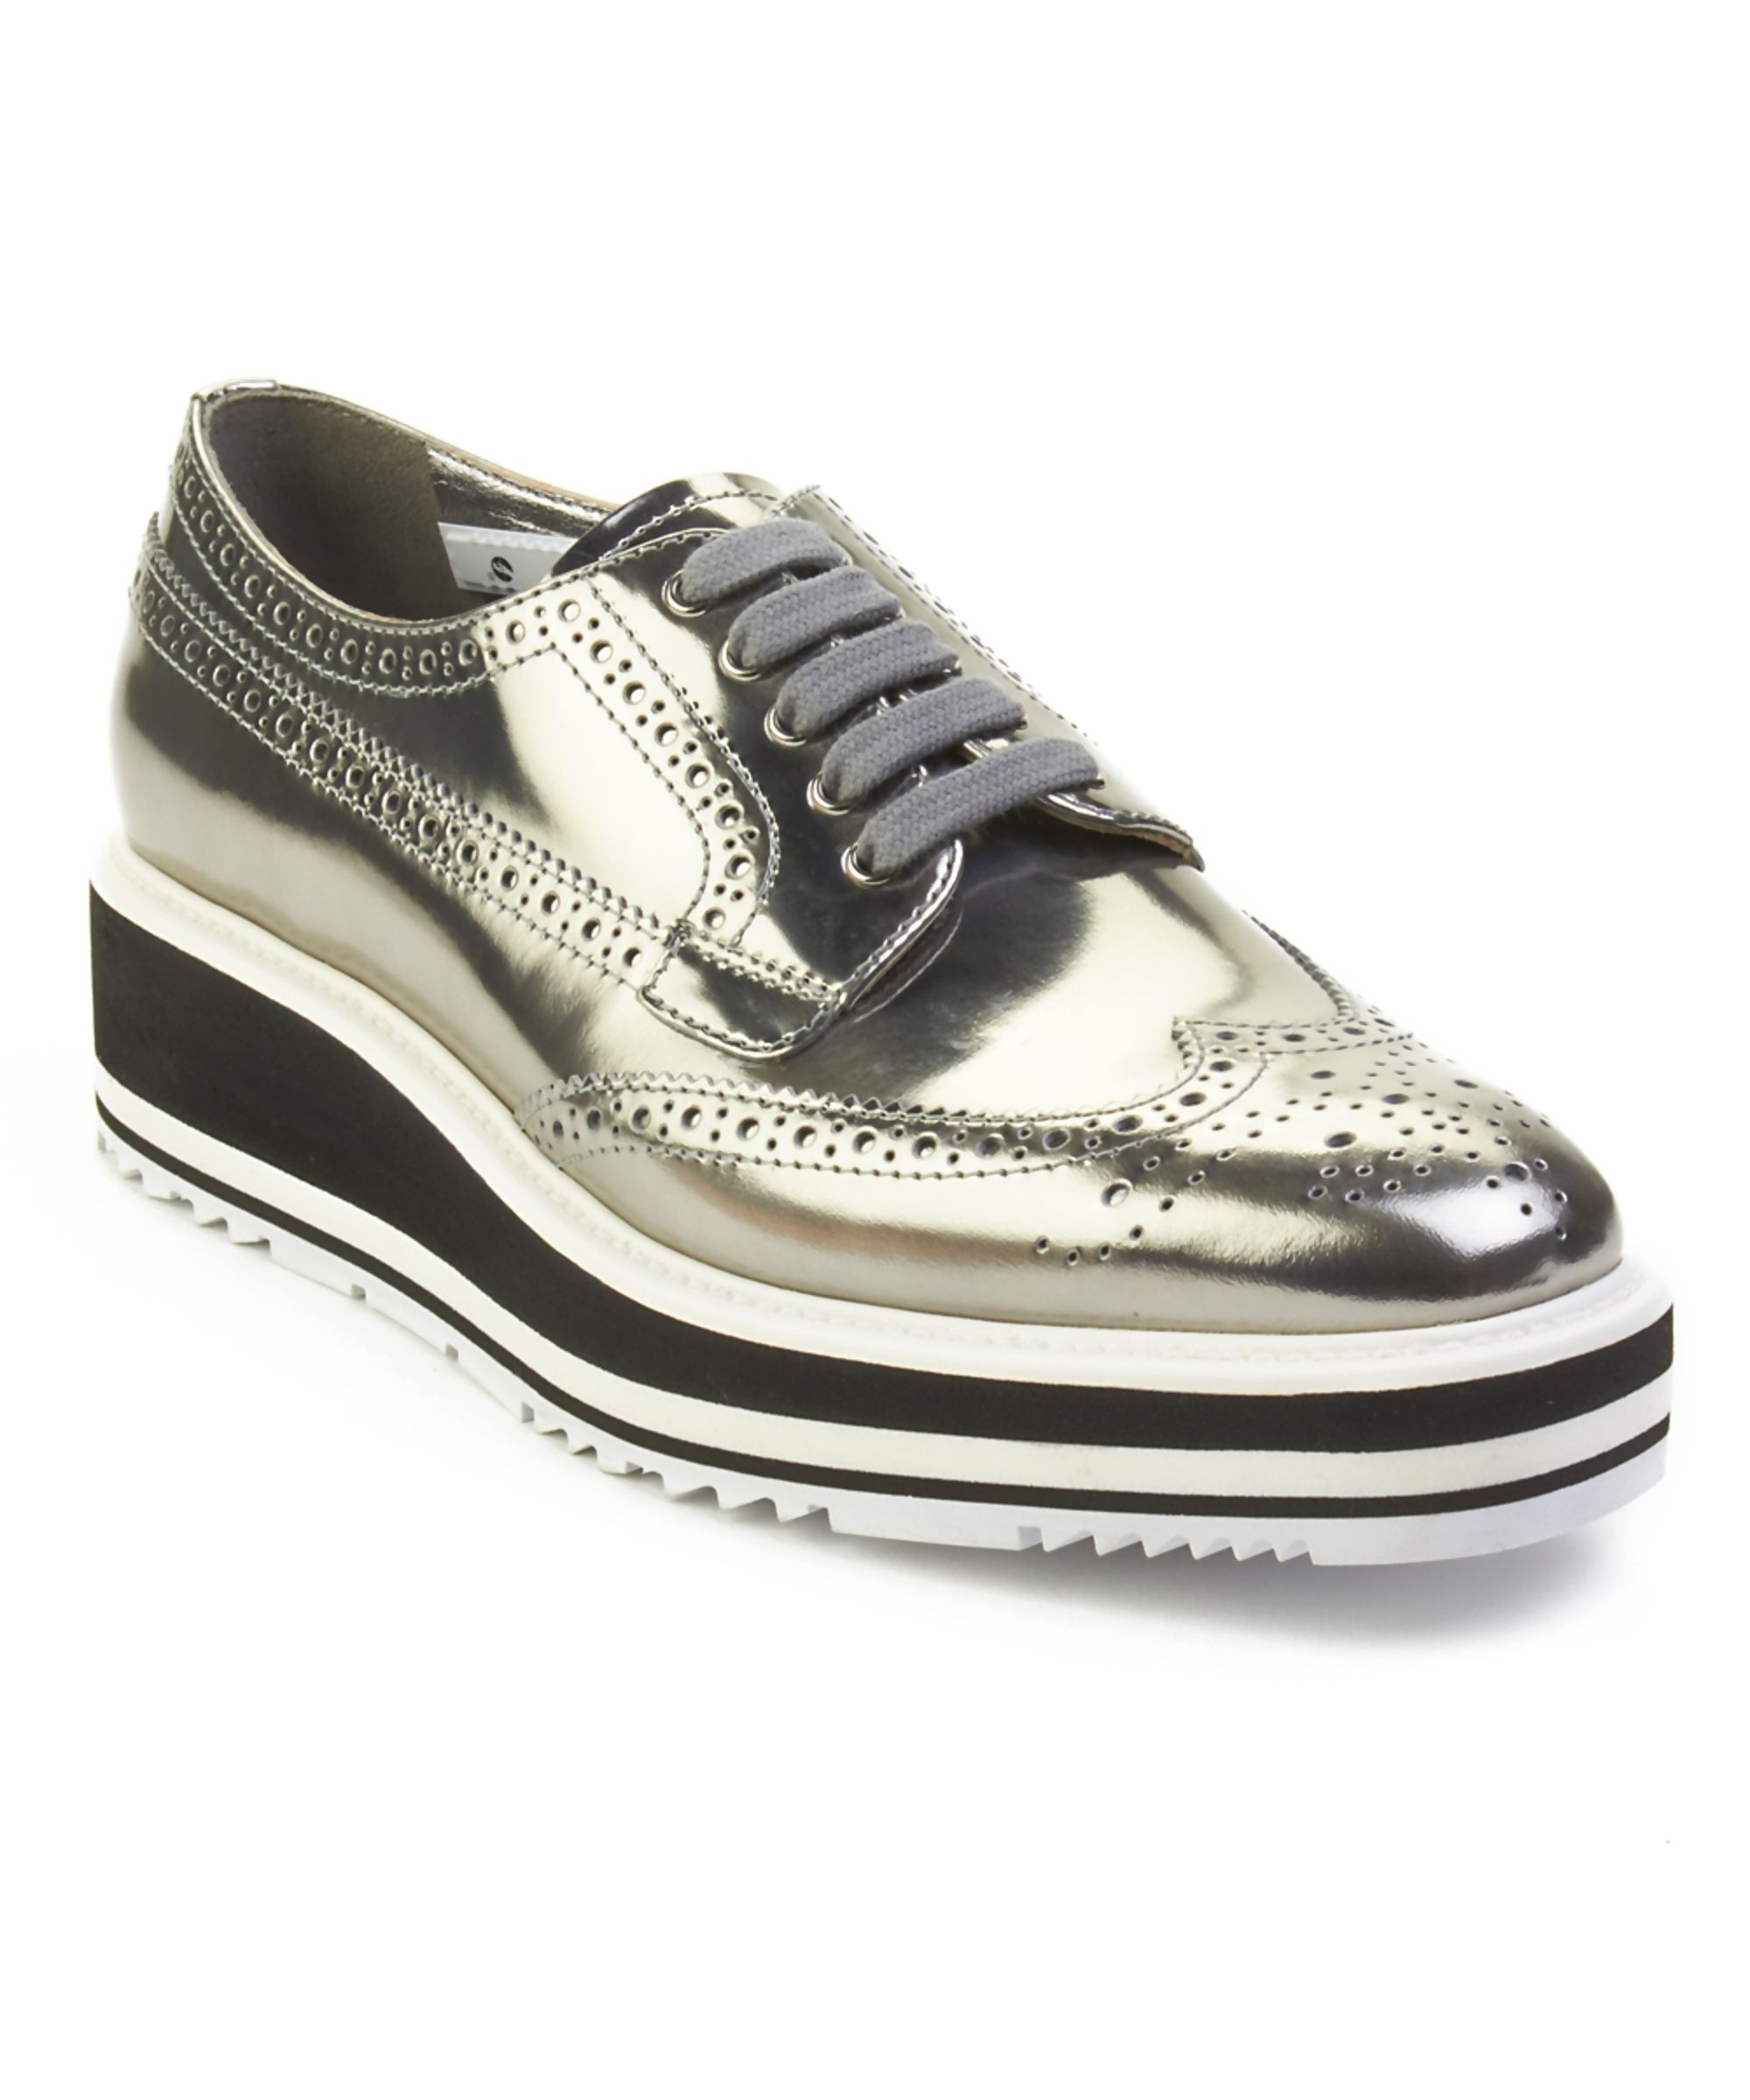 edcf308c PRADA | Prada Women's Leather Platform Derby Shoes Silver ...